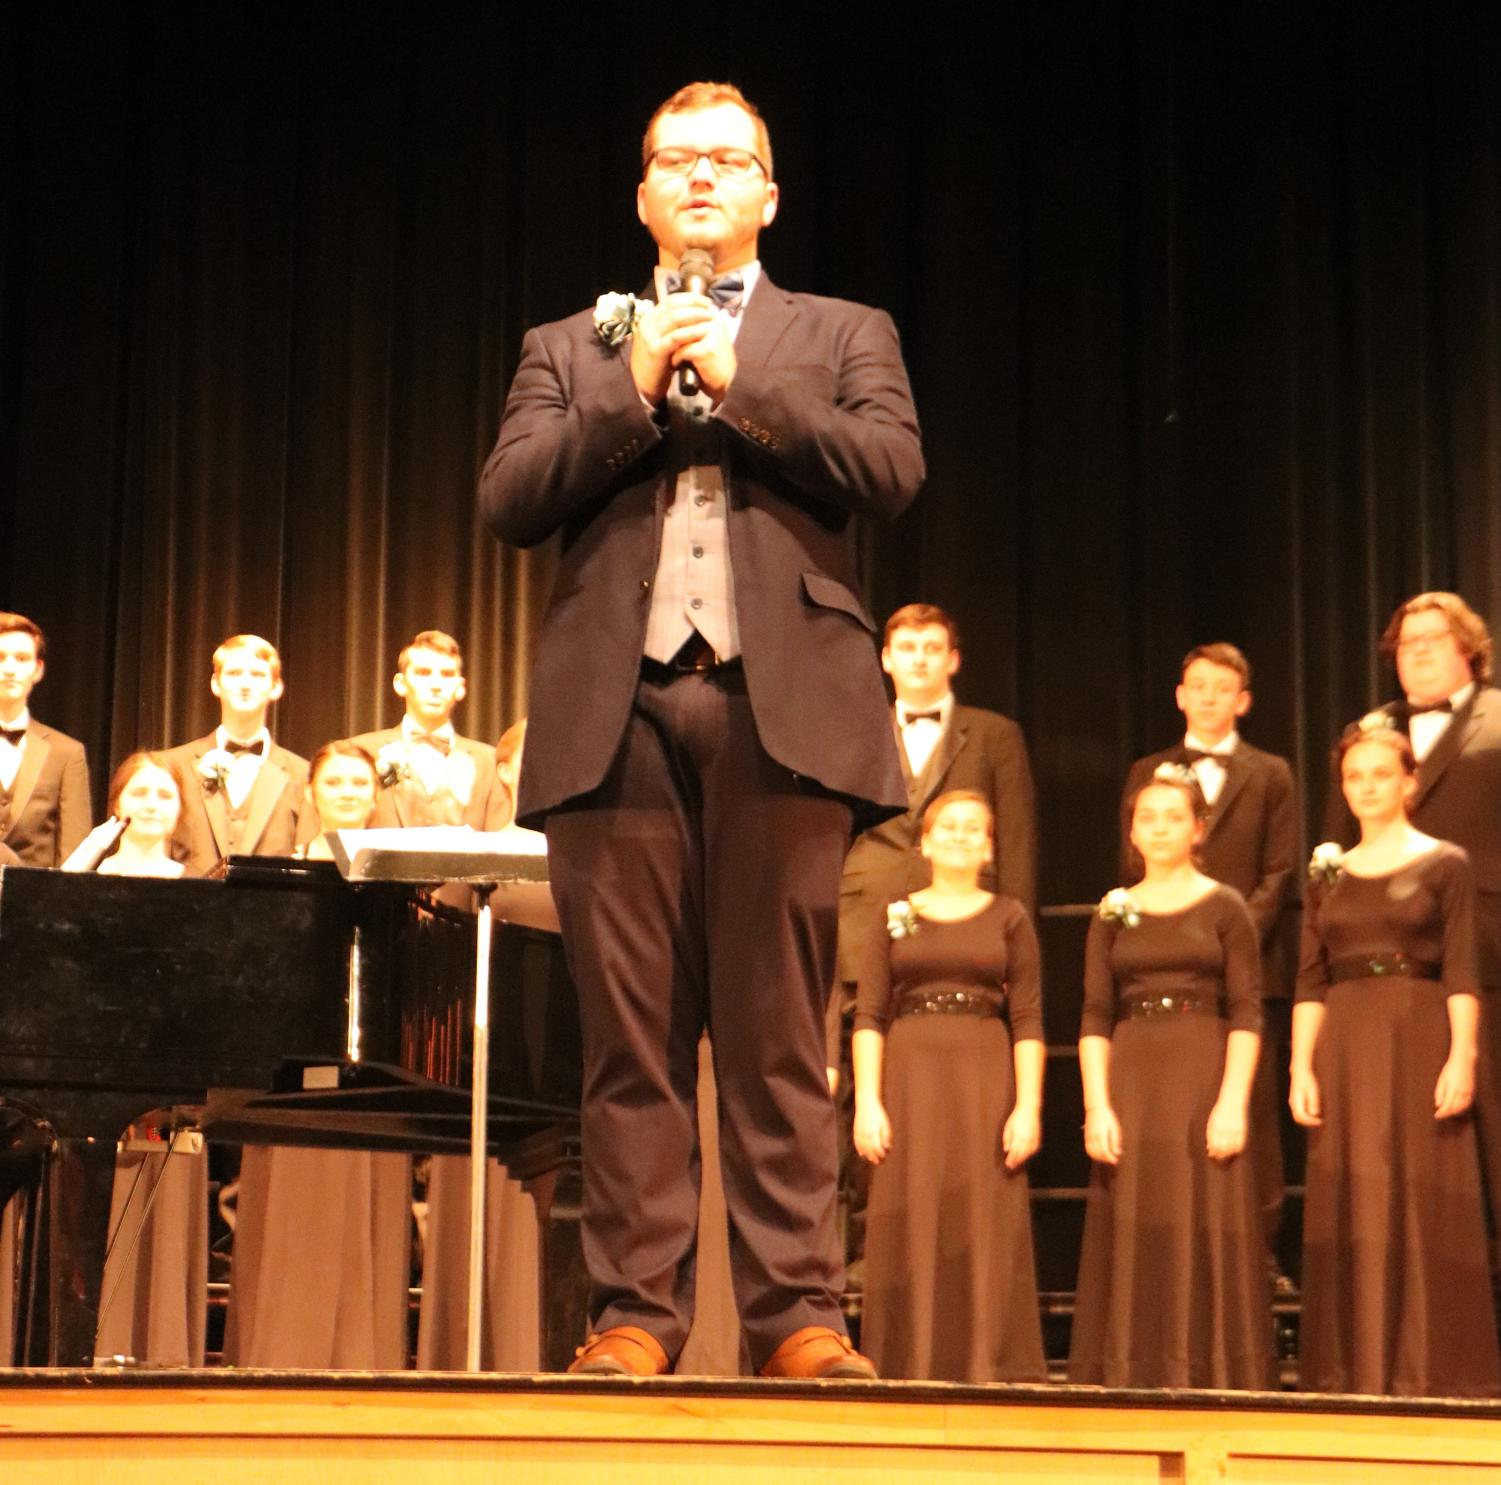 Chorus teacher Christopher Hickey has prepared the choir by leading their rehearsals in class and after school, leading up to the show.